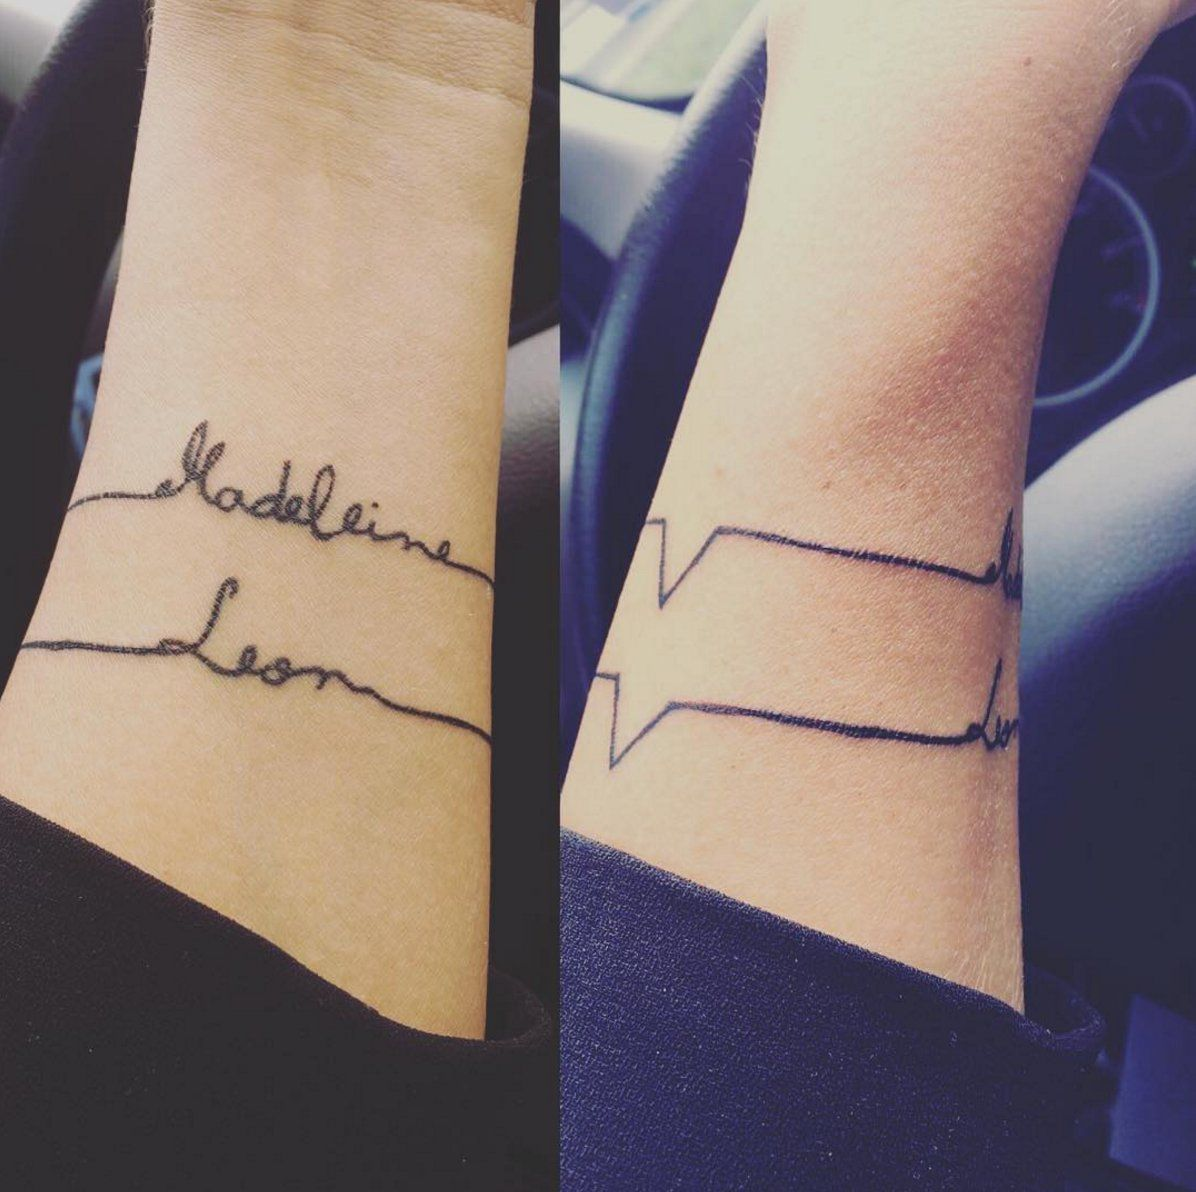 15 Inspirations Pour Un Tatouage Prenom Tattoos Tattoos Wrist